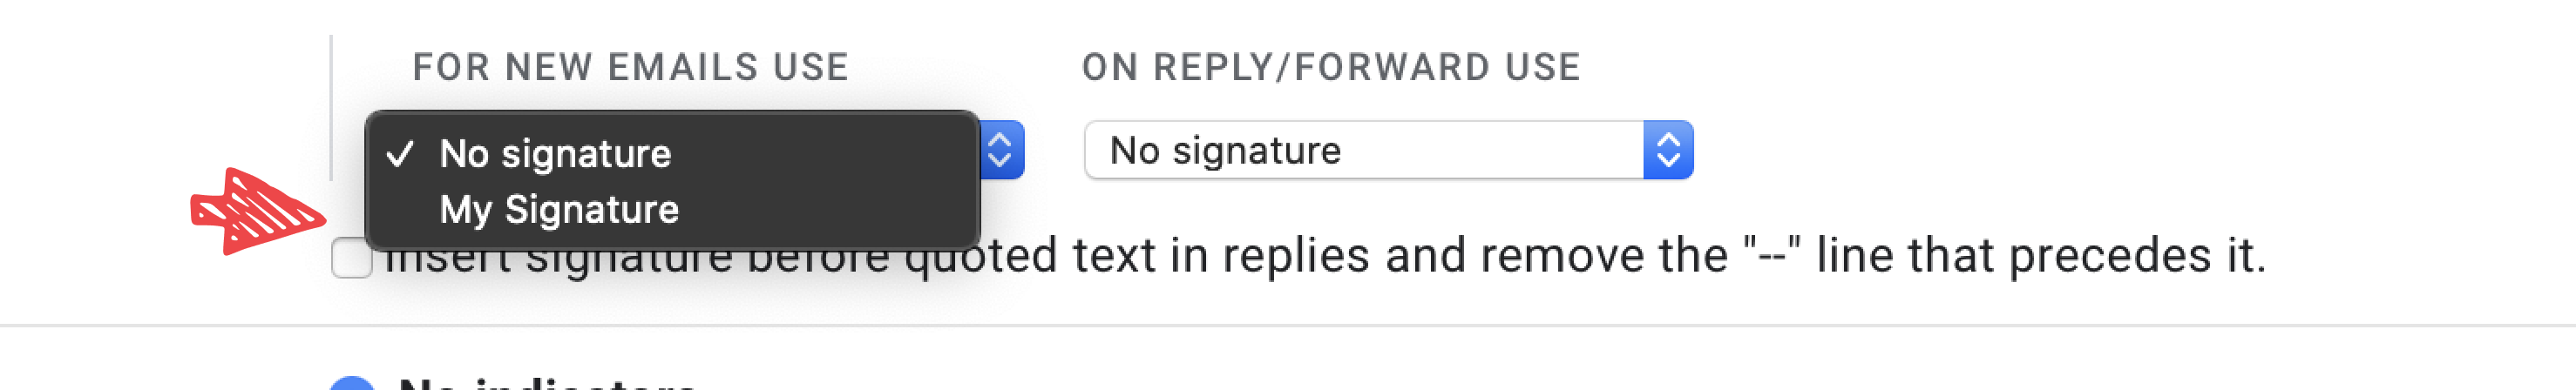 Screenshot showing how to set a new signature on gmail - step 6